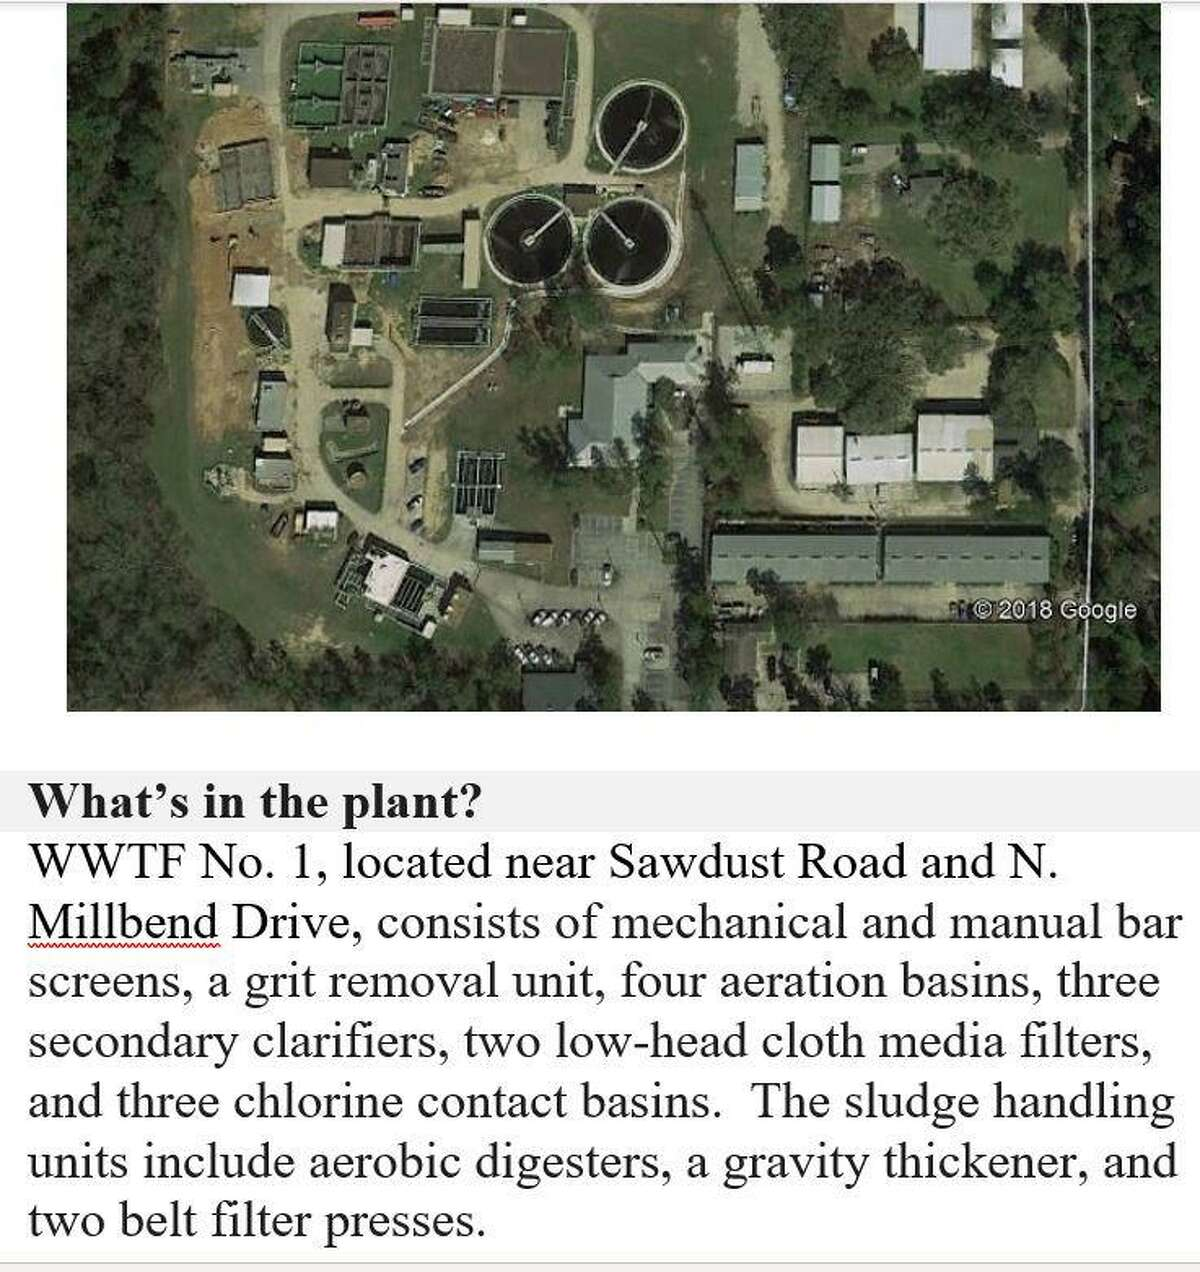 The SJRA Waste Water Treatment Facility No. 1 is located near the intersection of Sawdust Road and South Millbend Drive.